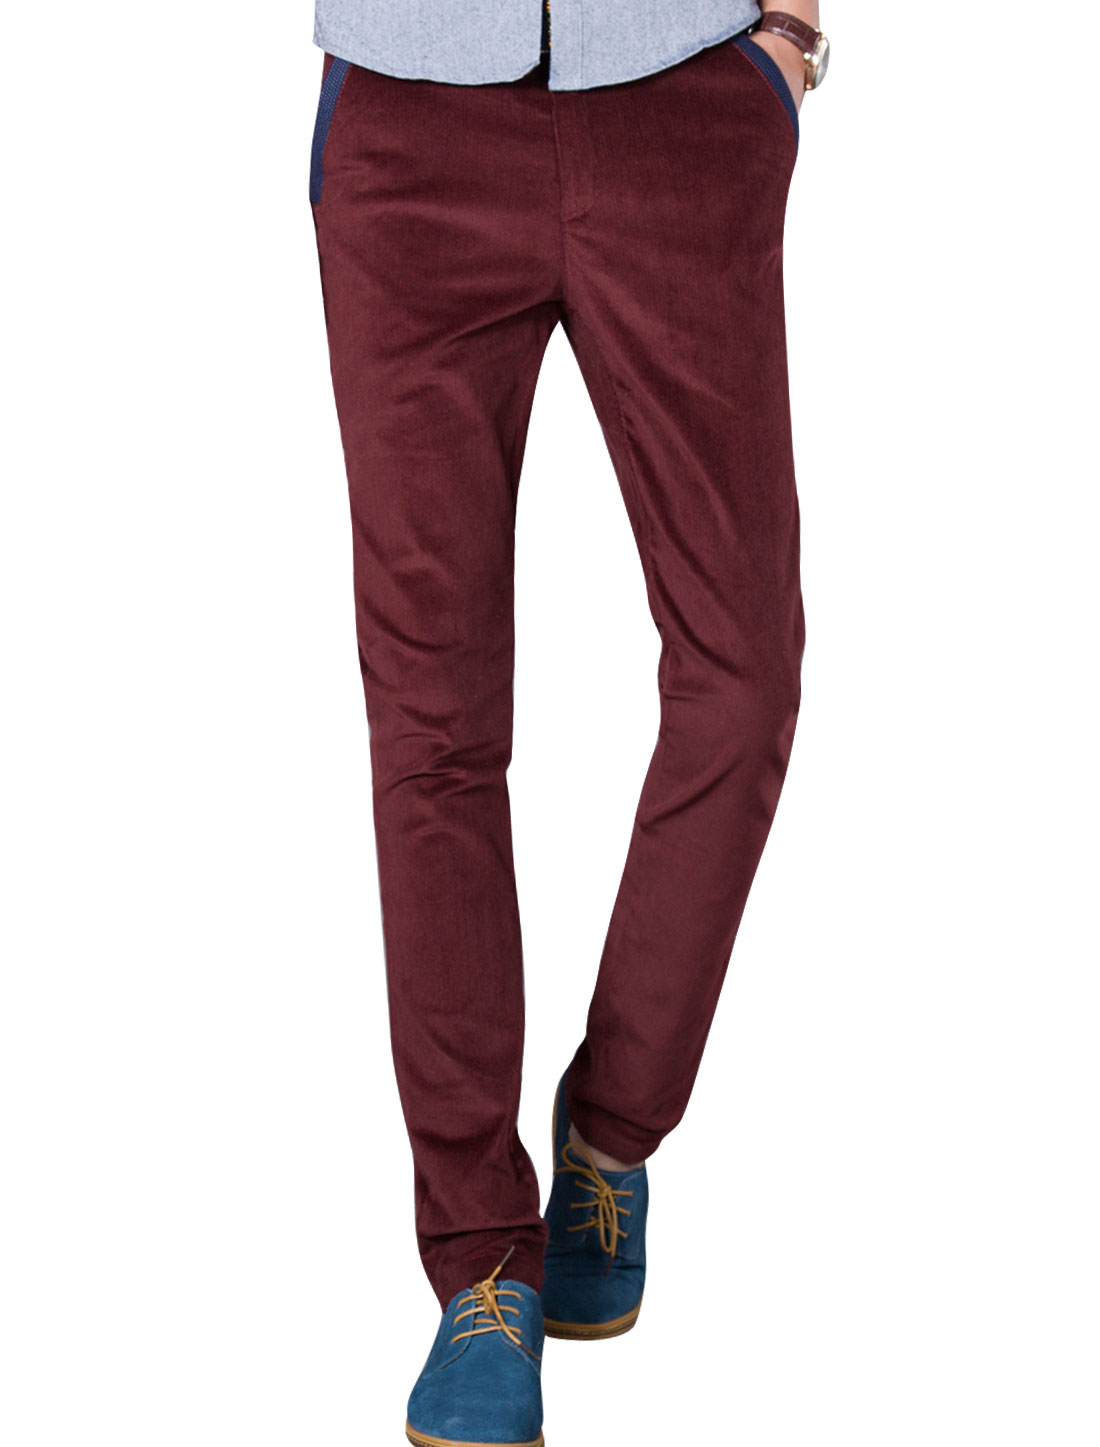 Men Burgundy Zip Up Button Down Belt Loop Front Pockets Casaul Pants W 32